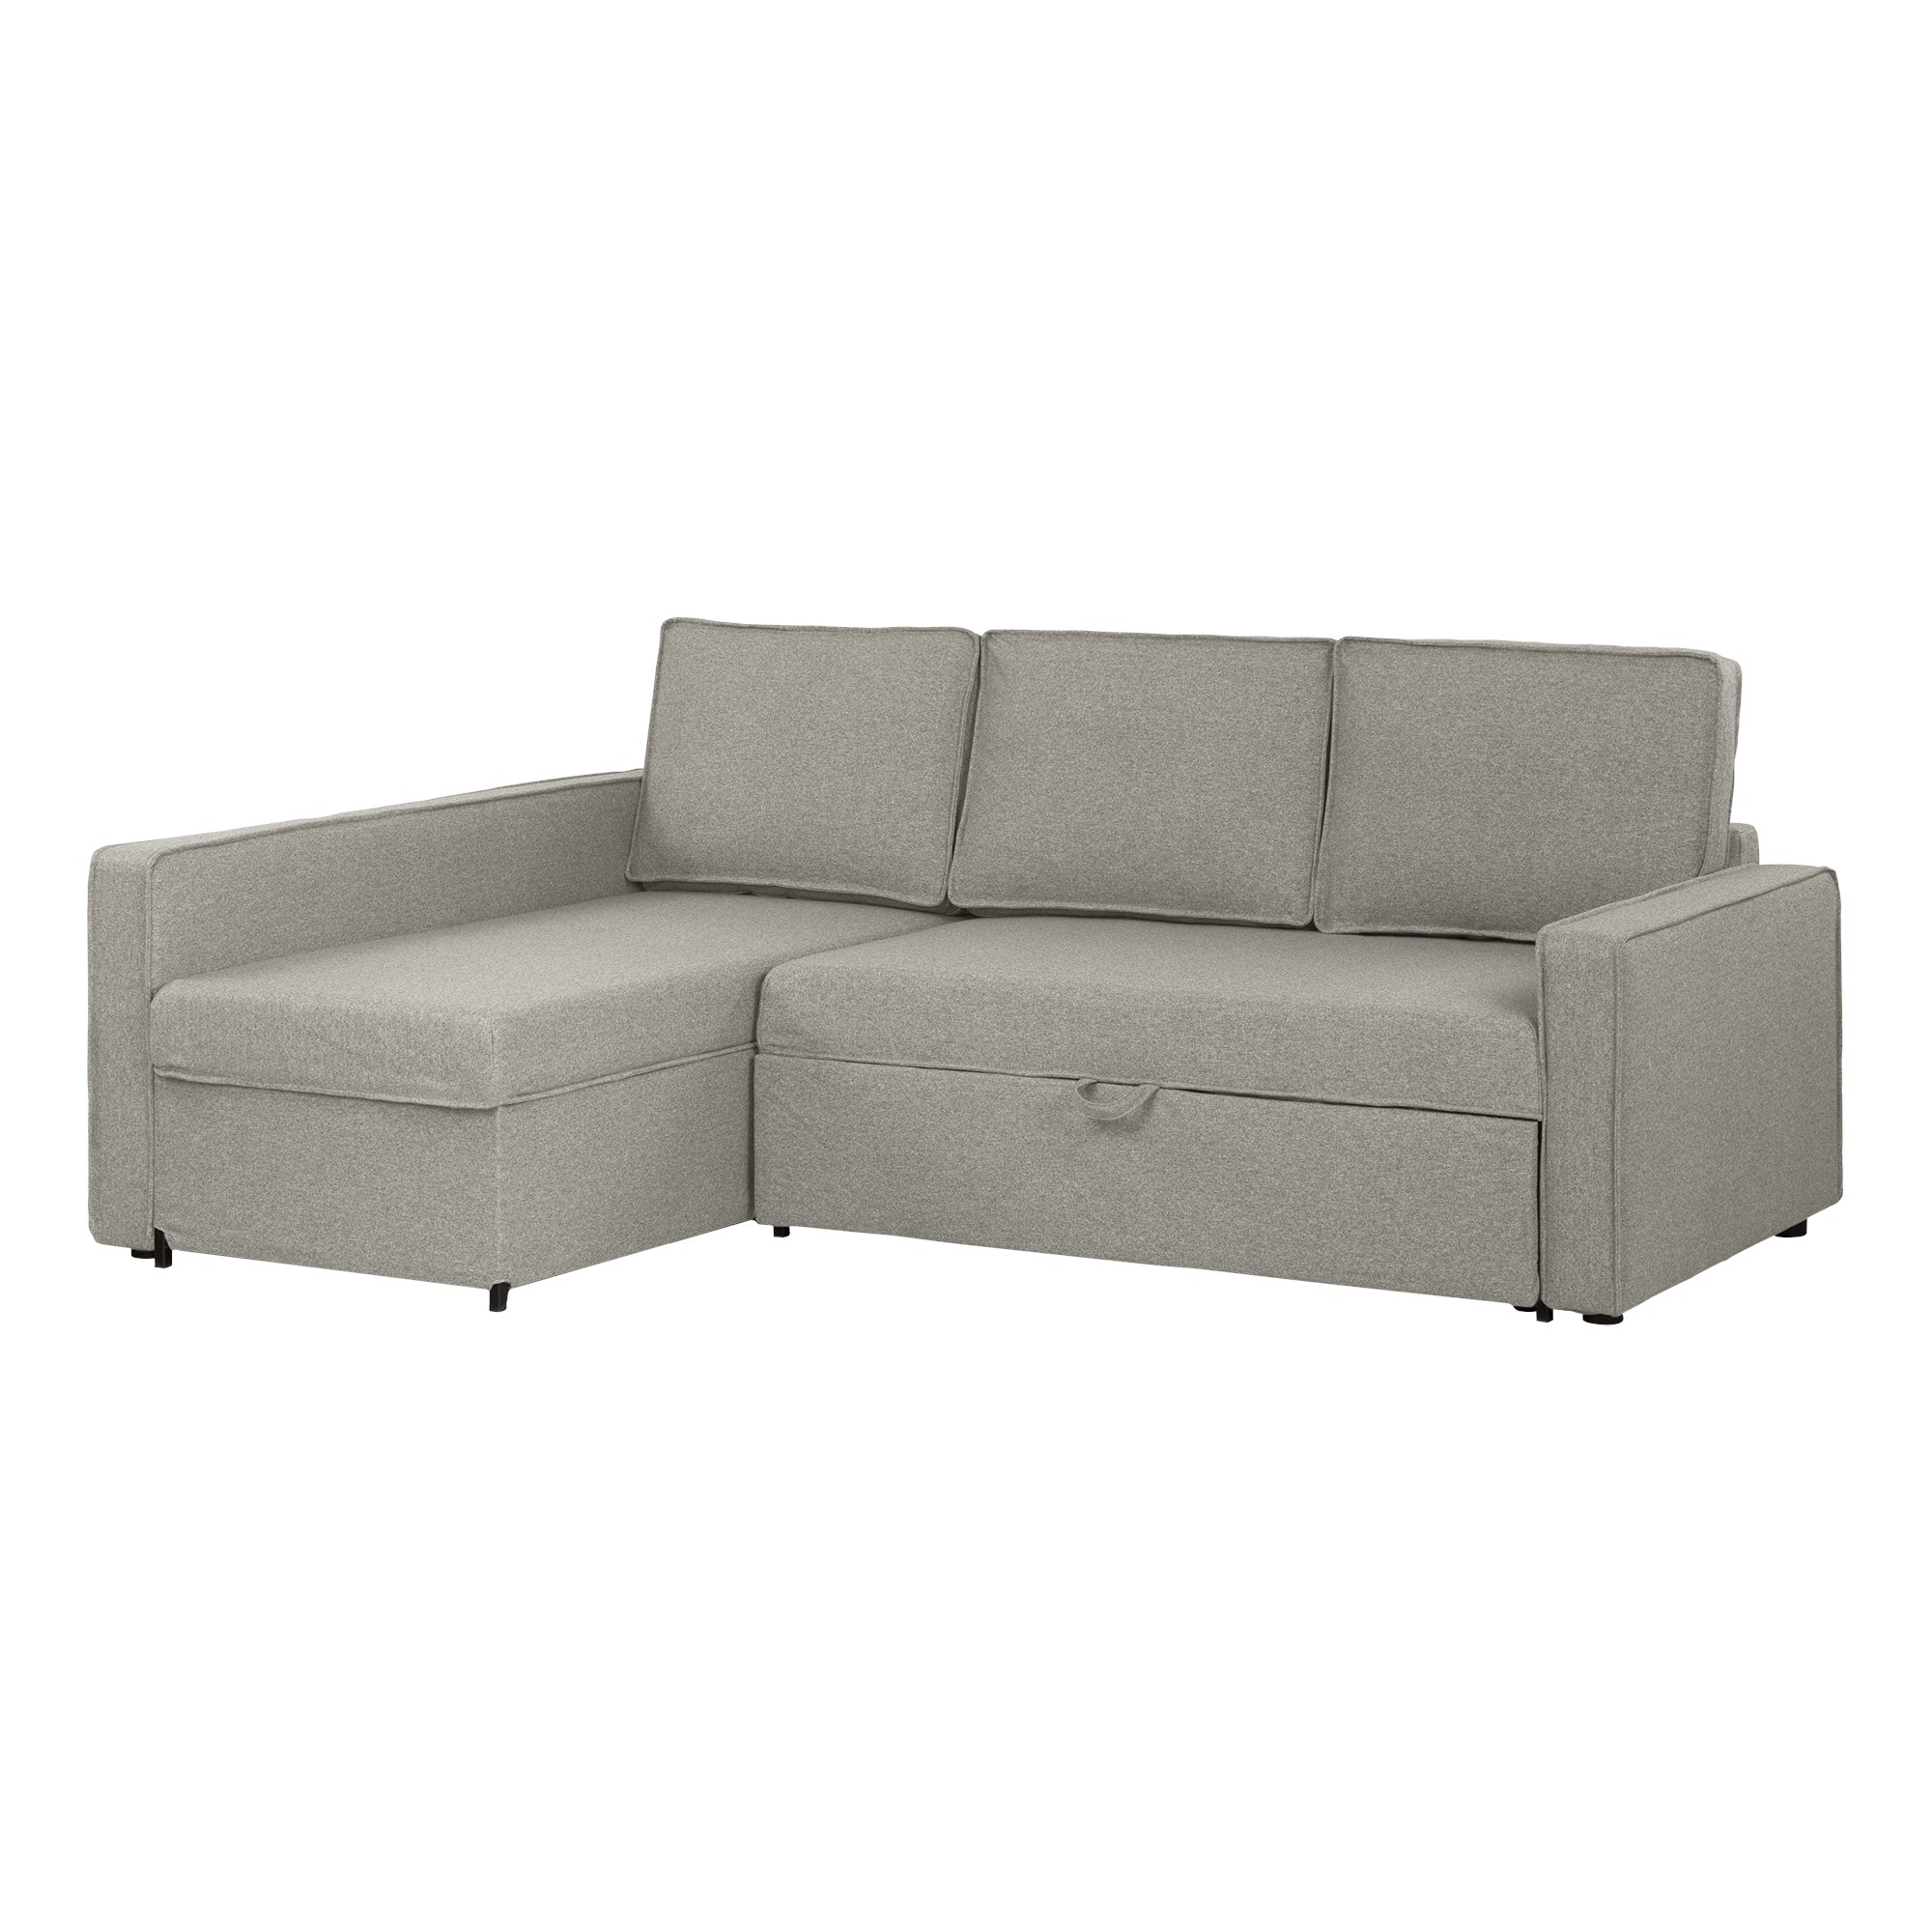 Pleasant South Shore Live It Cozy Sectional Sofa Bed With Storage Ncnpc Chair Design For Home Ncnpcorg